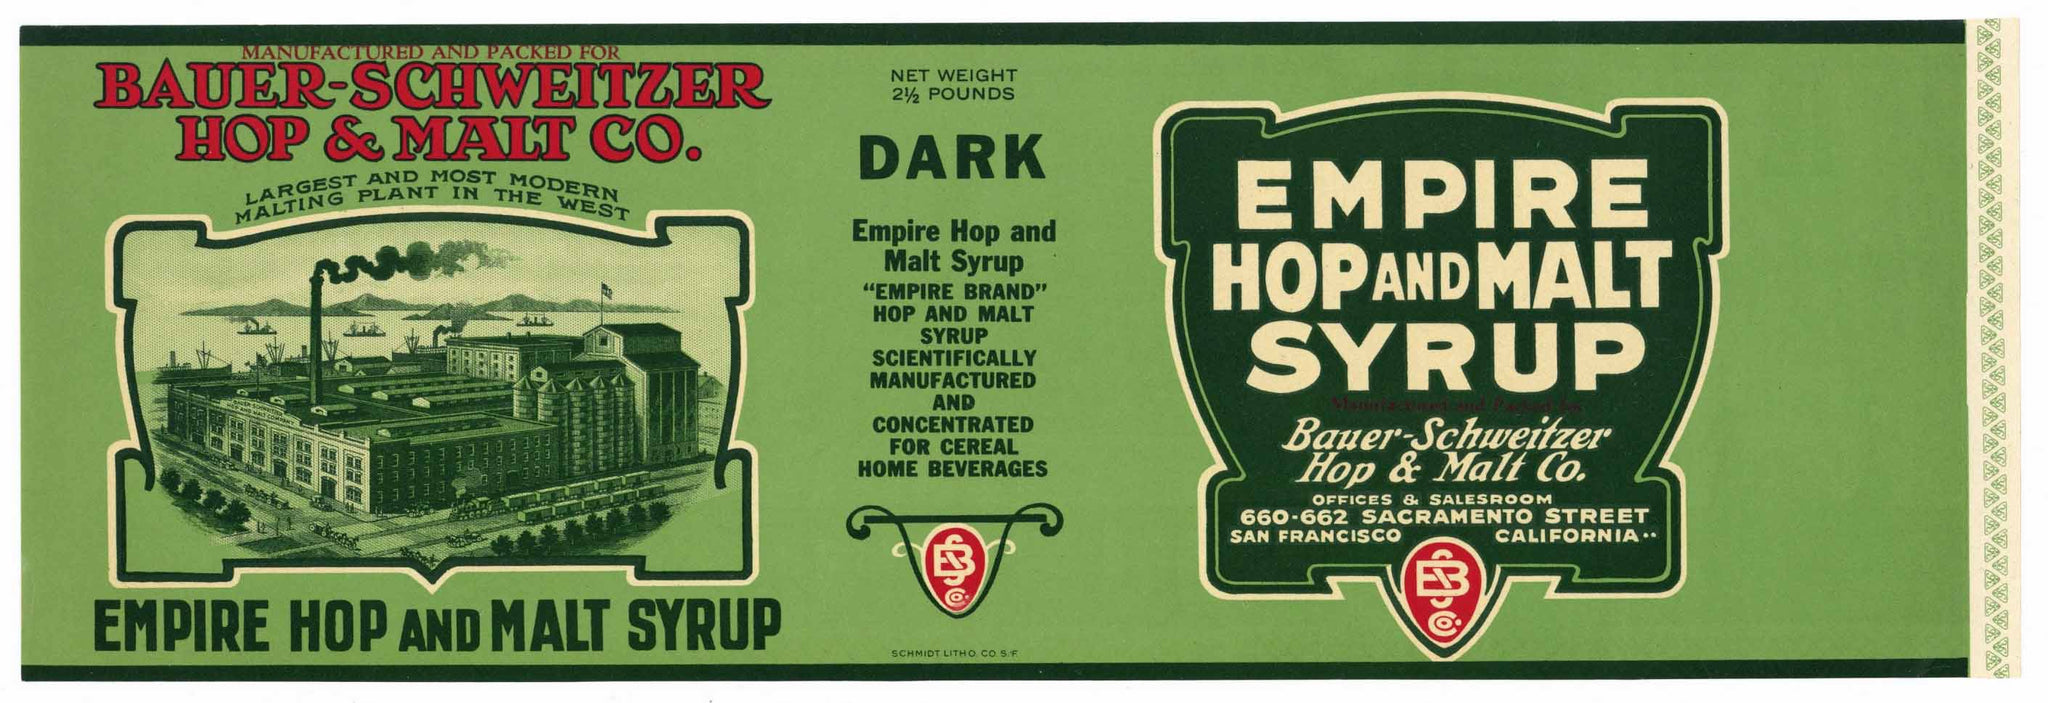 Empire Hop and Malt Syrup Brand Vintage San Francisco Can Label